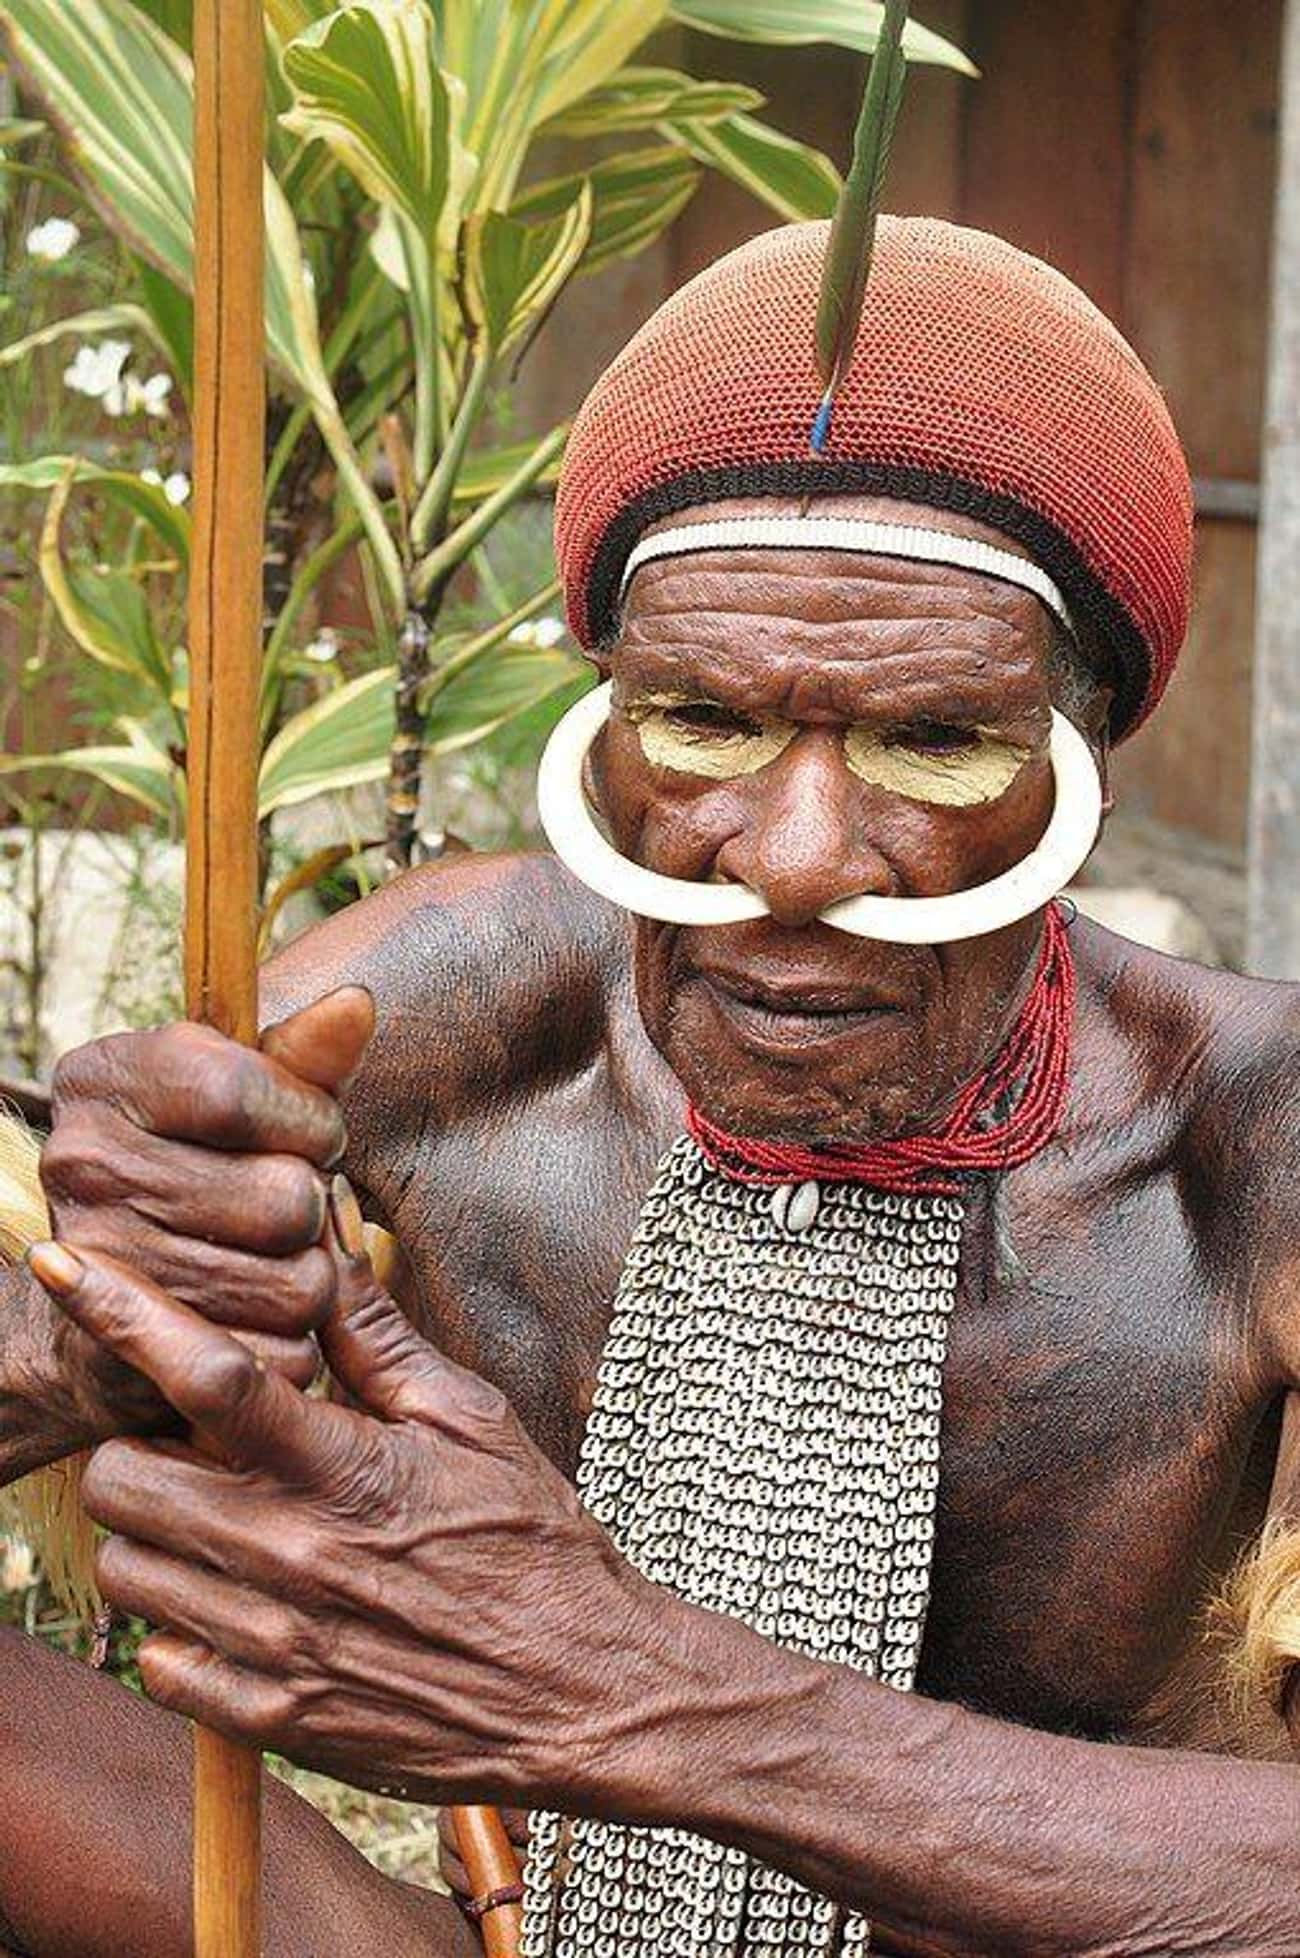 The Practice Was Mostly Applie is listed (or ranked) 1 on the list Why And How Peoples Of The Dani Tribe Cut Off Fingers As A Way Of Mourning